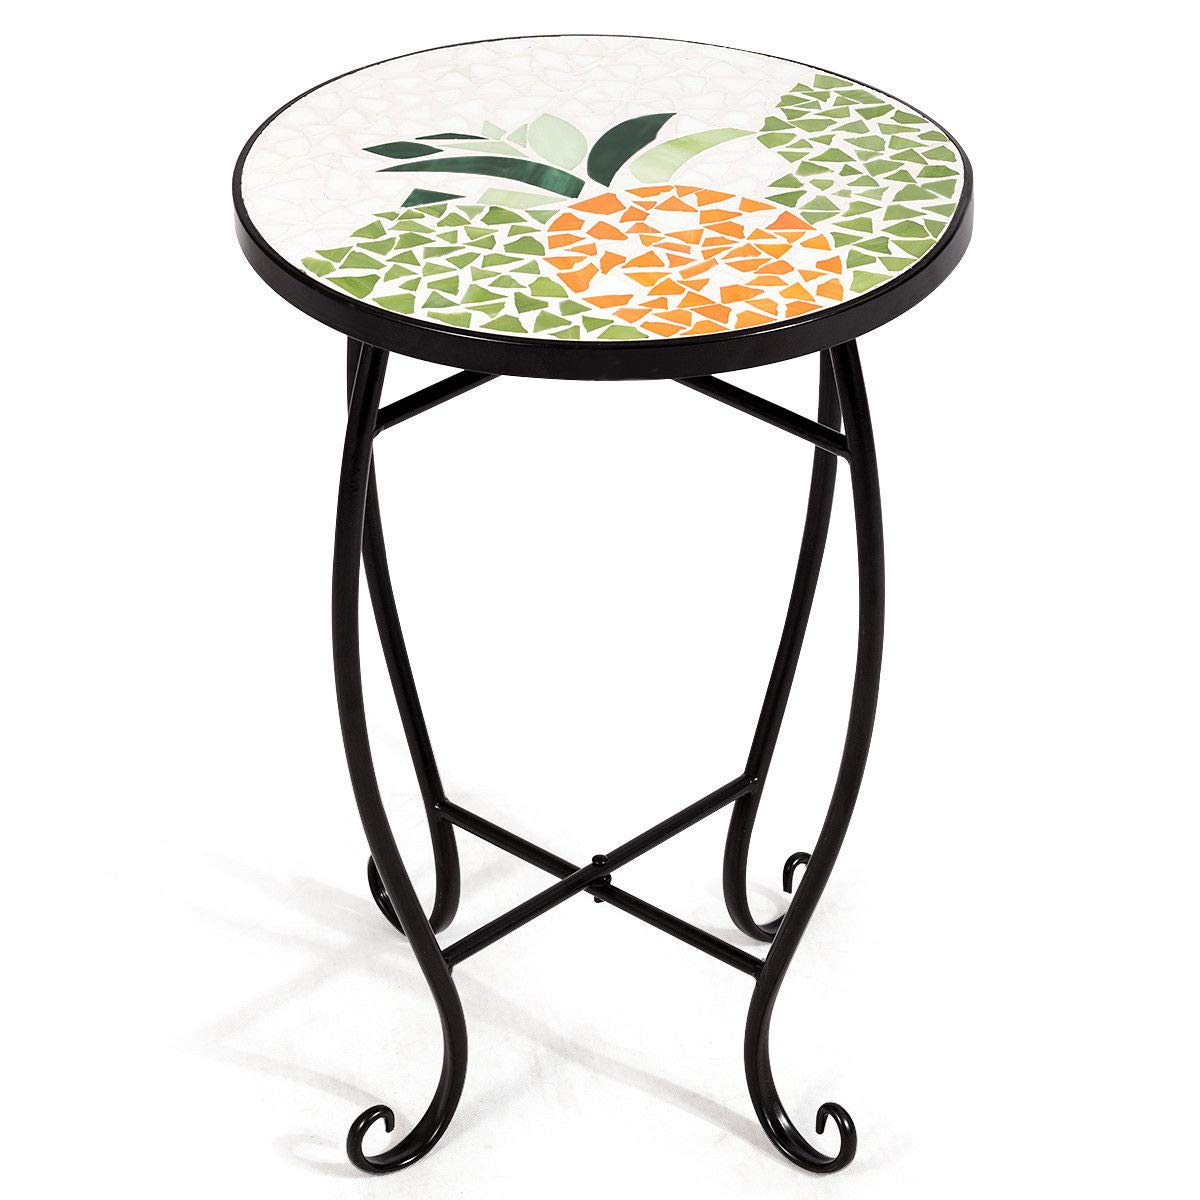 "NanaPluz 21"" H Yellow Round Plant Stand Steel Scheme Garden Decor Display Accent Table Curved Legs Pineapple Mosaic Inlay Top with Ebook"